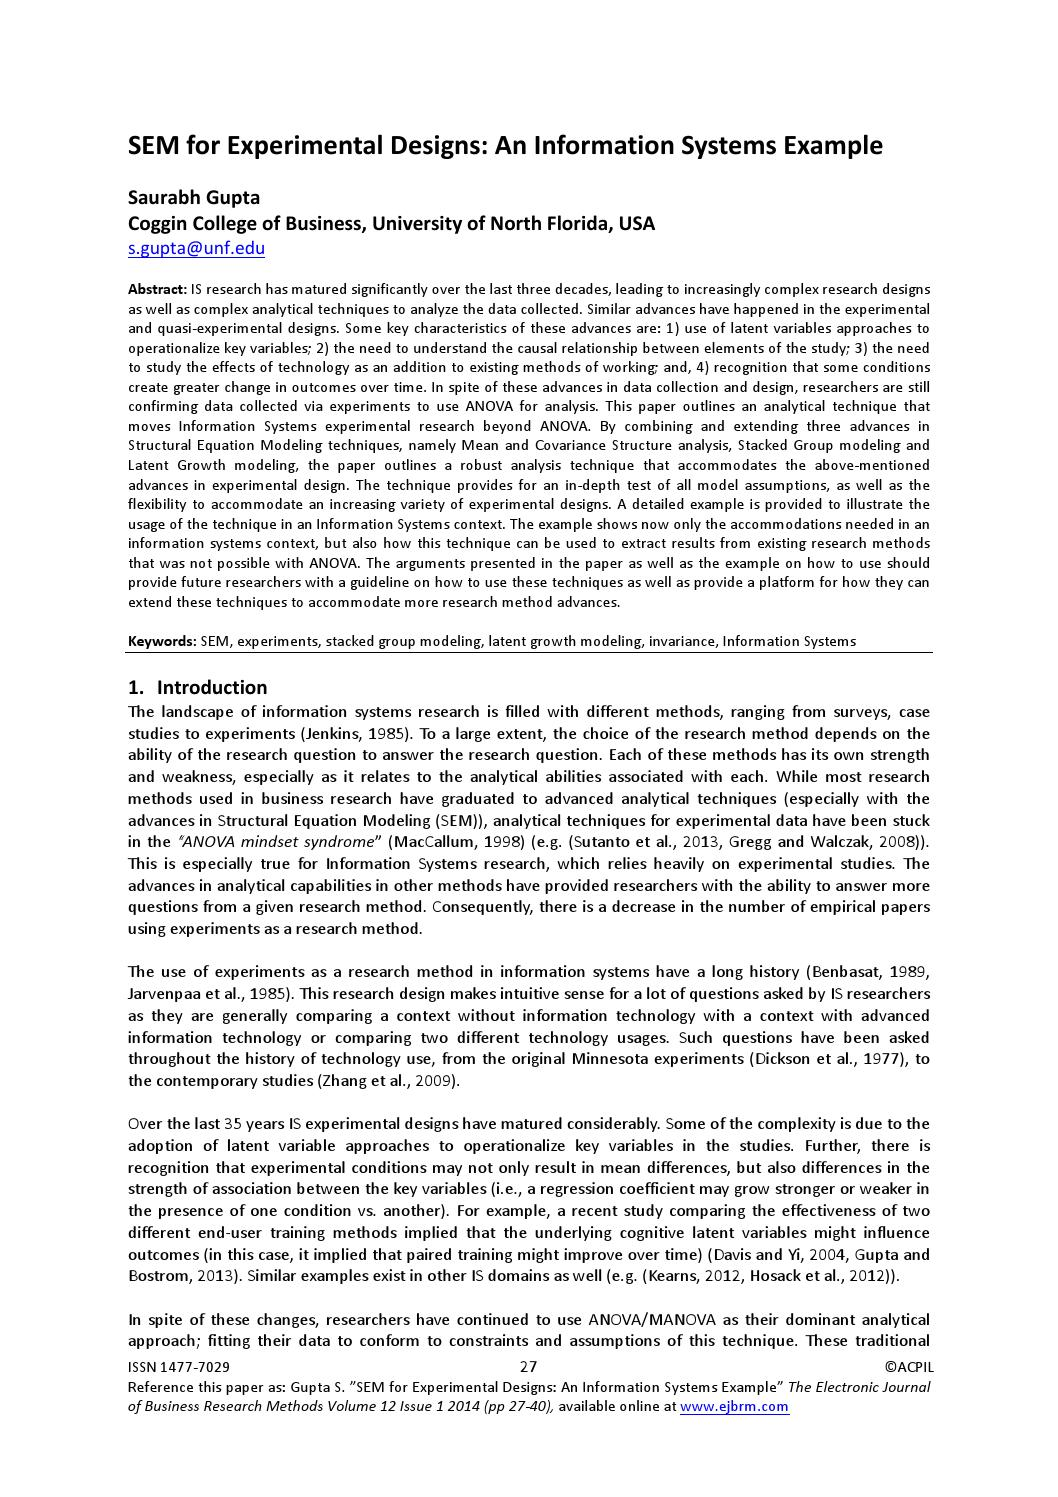 SEM for Experimental Designs: An Information Systems Example